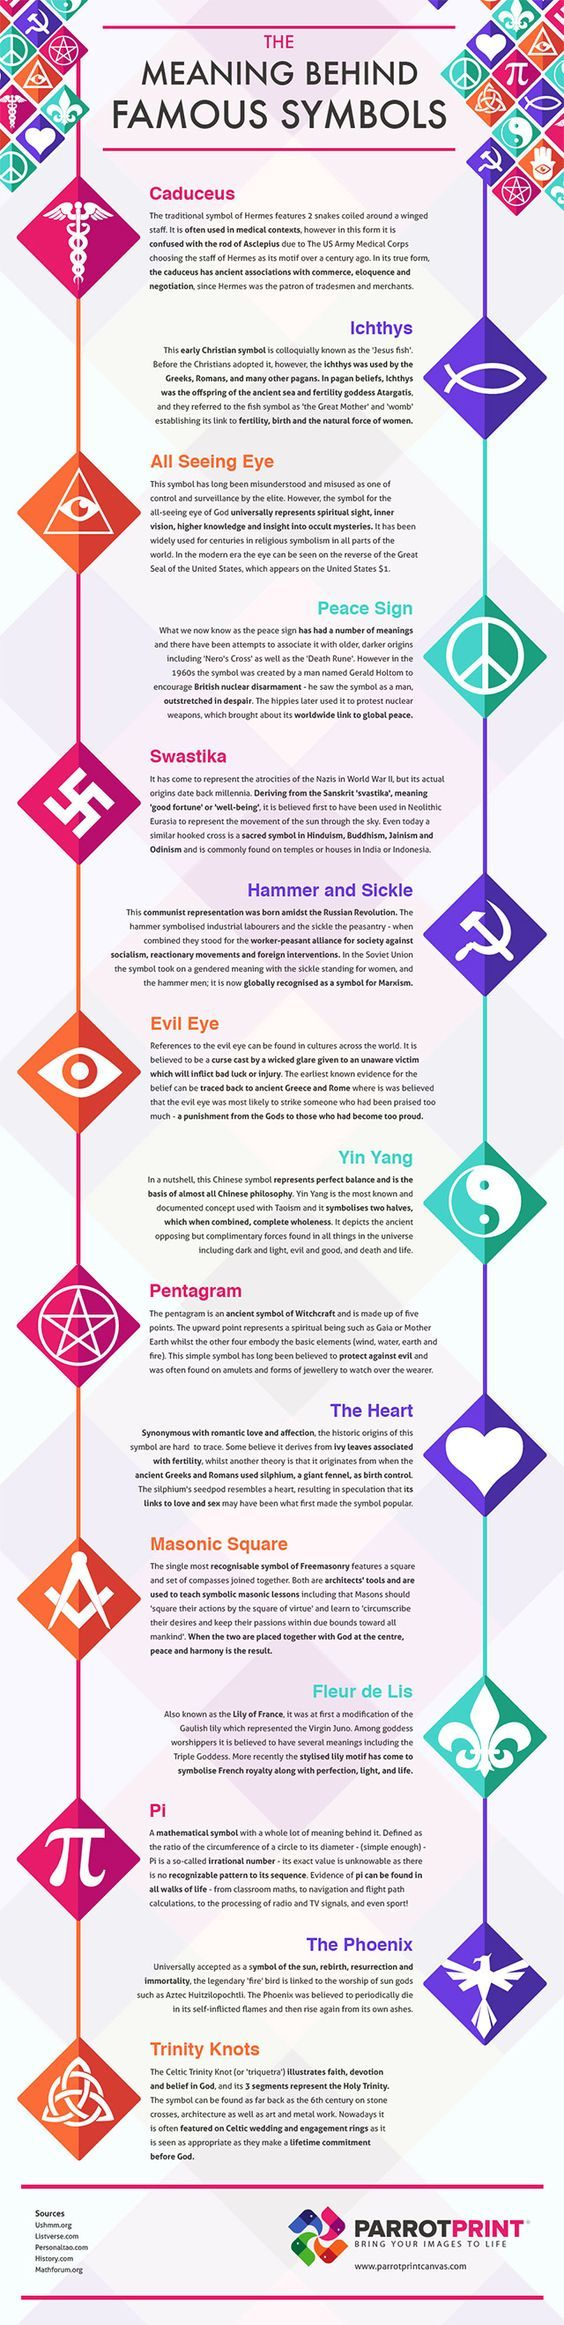 Find out the meaning behind famous symbols including the likes of find out the meaning behind famous symbols including the likes of the peace sign the all seeing eye the hammer biocorpaavc Images